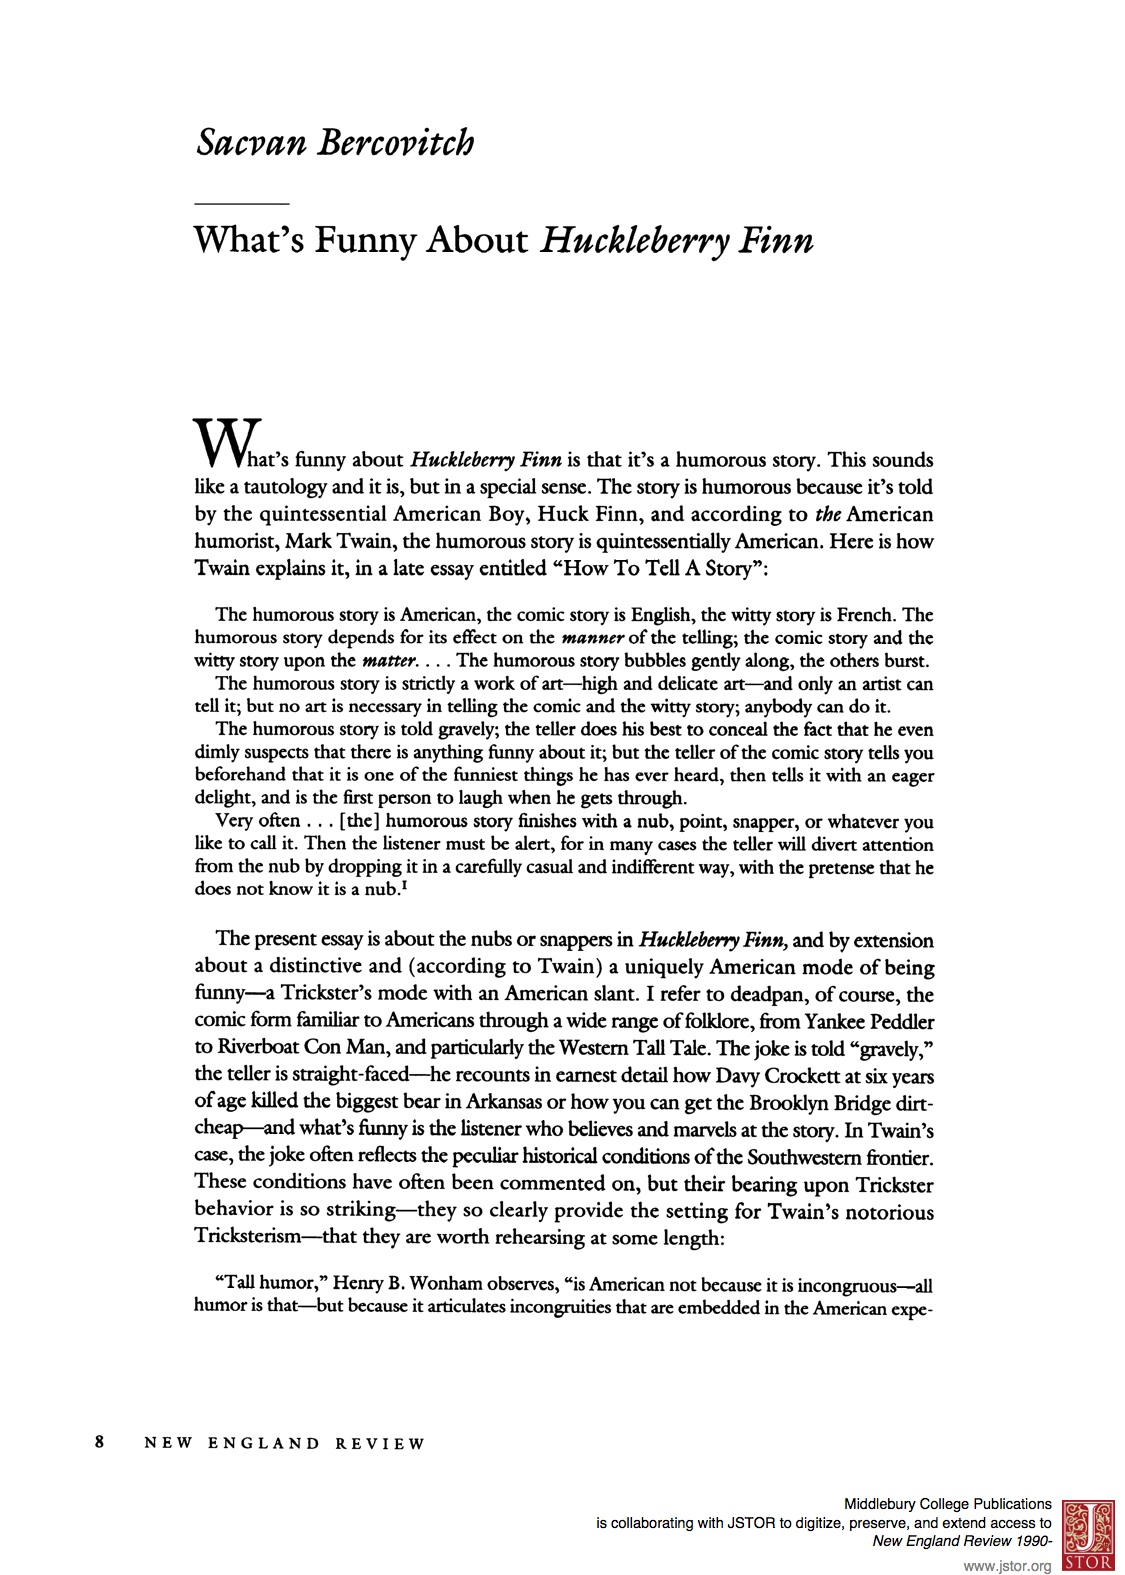 essays thesis statements edozoneip where is a thesis statement essay on huckleberry finn success essay writing what s funny about huckleberry finn whatsfunnyabouthuckfinn whats funny about